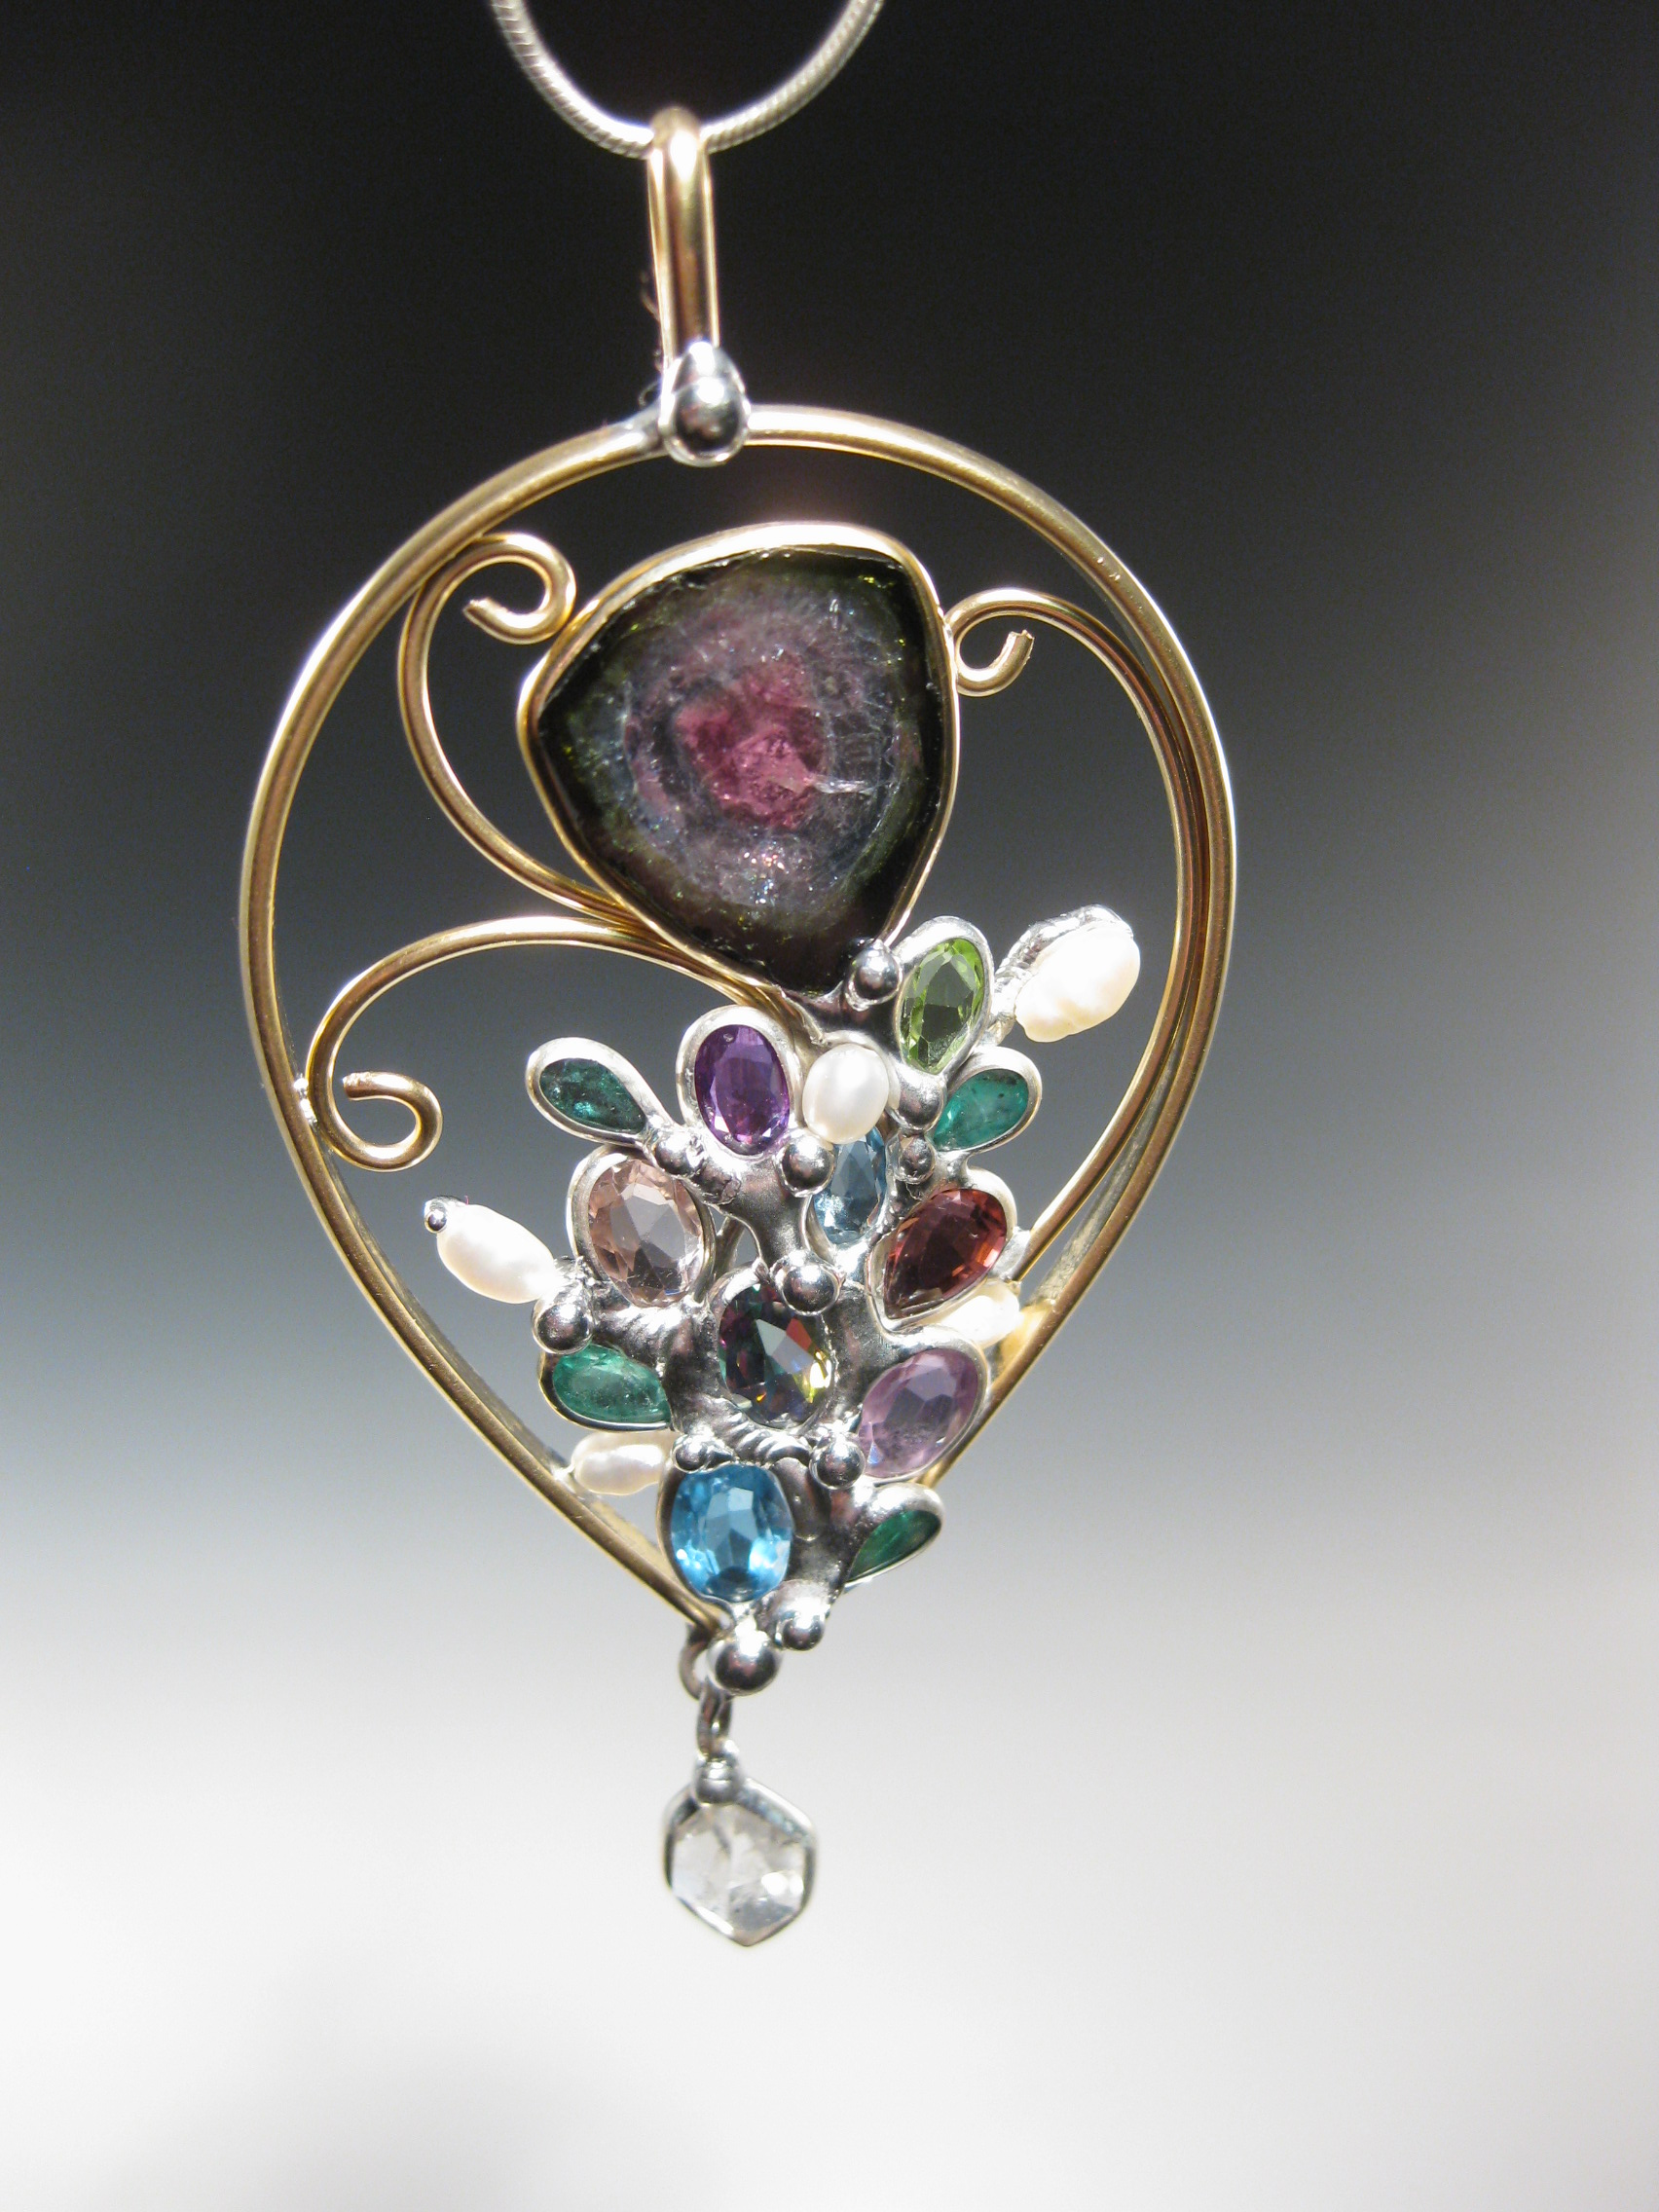 Magical Delights Handcrafted Jewelry Designs Creates